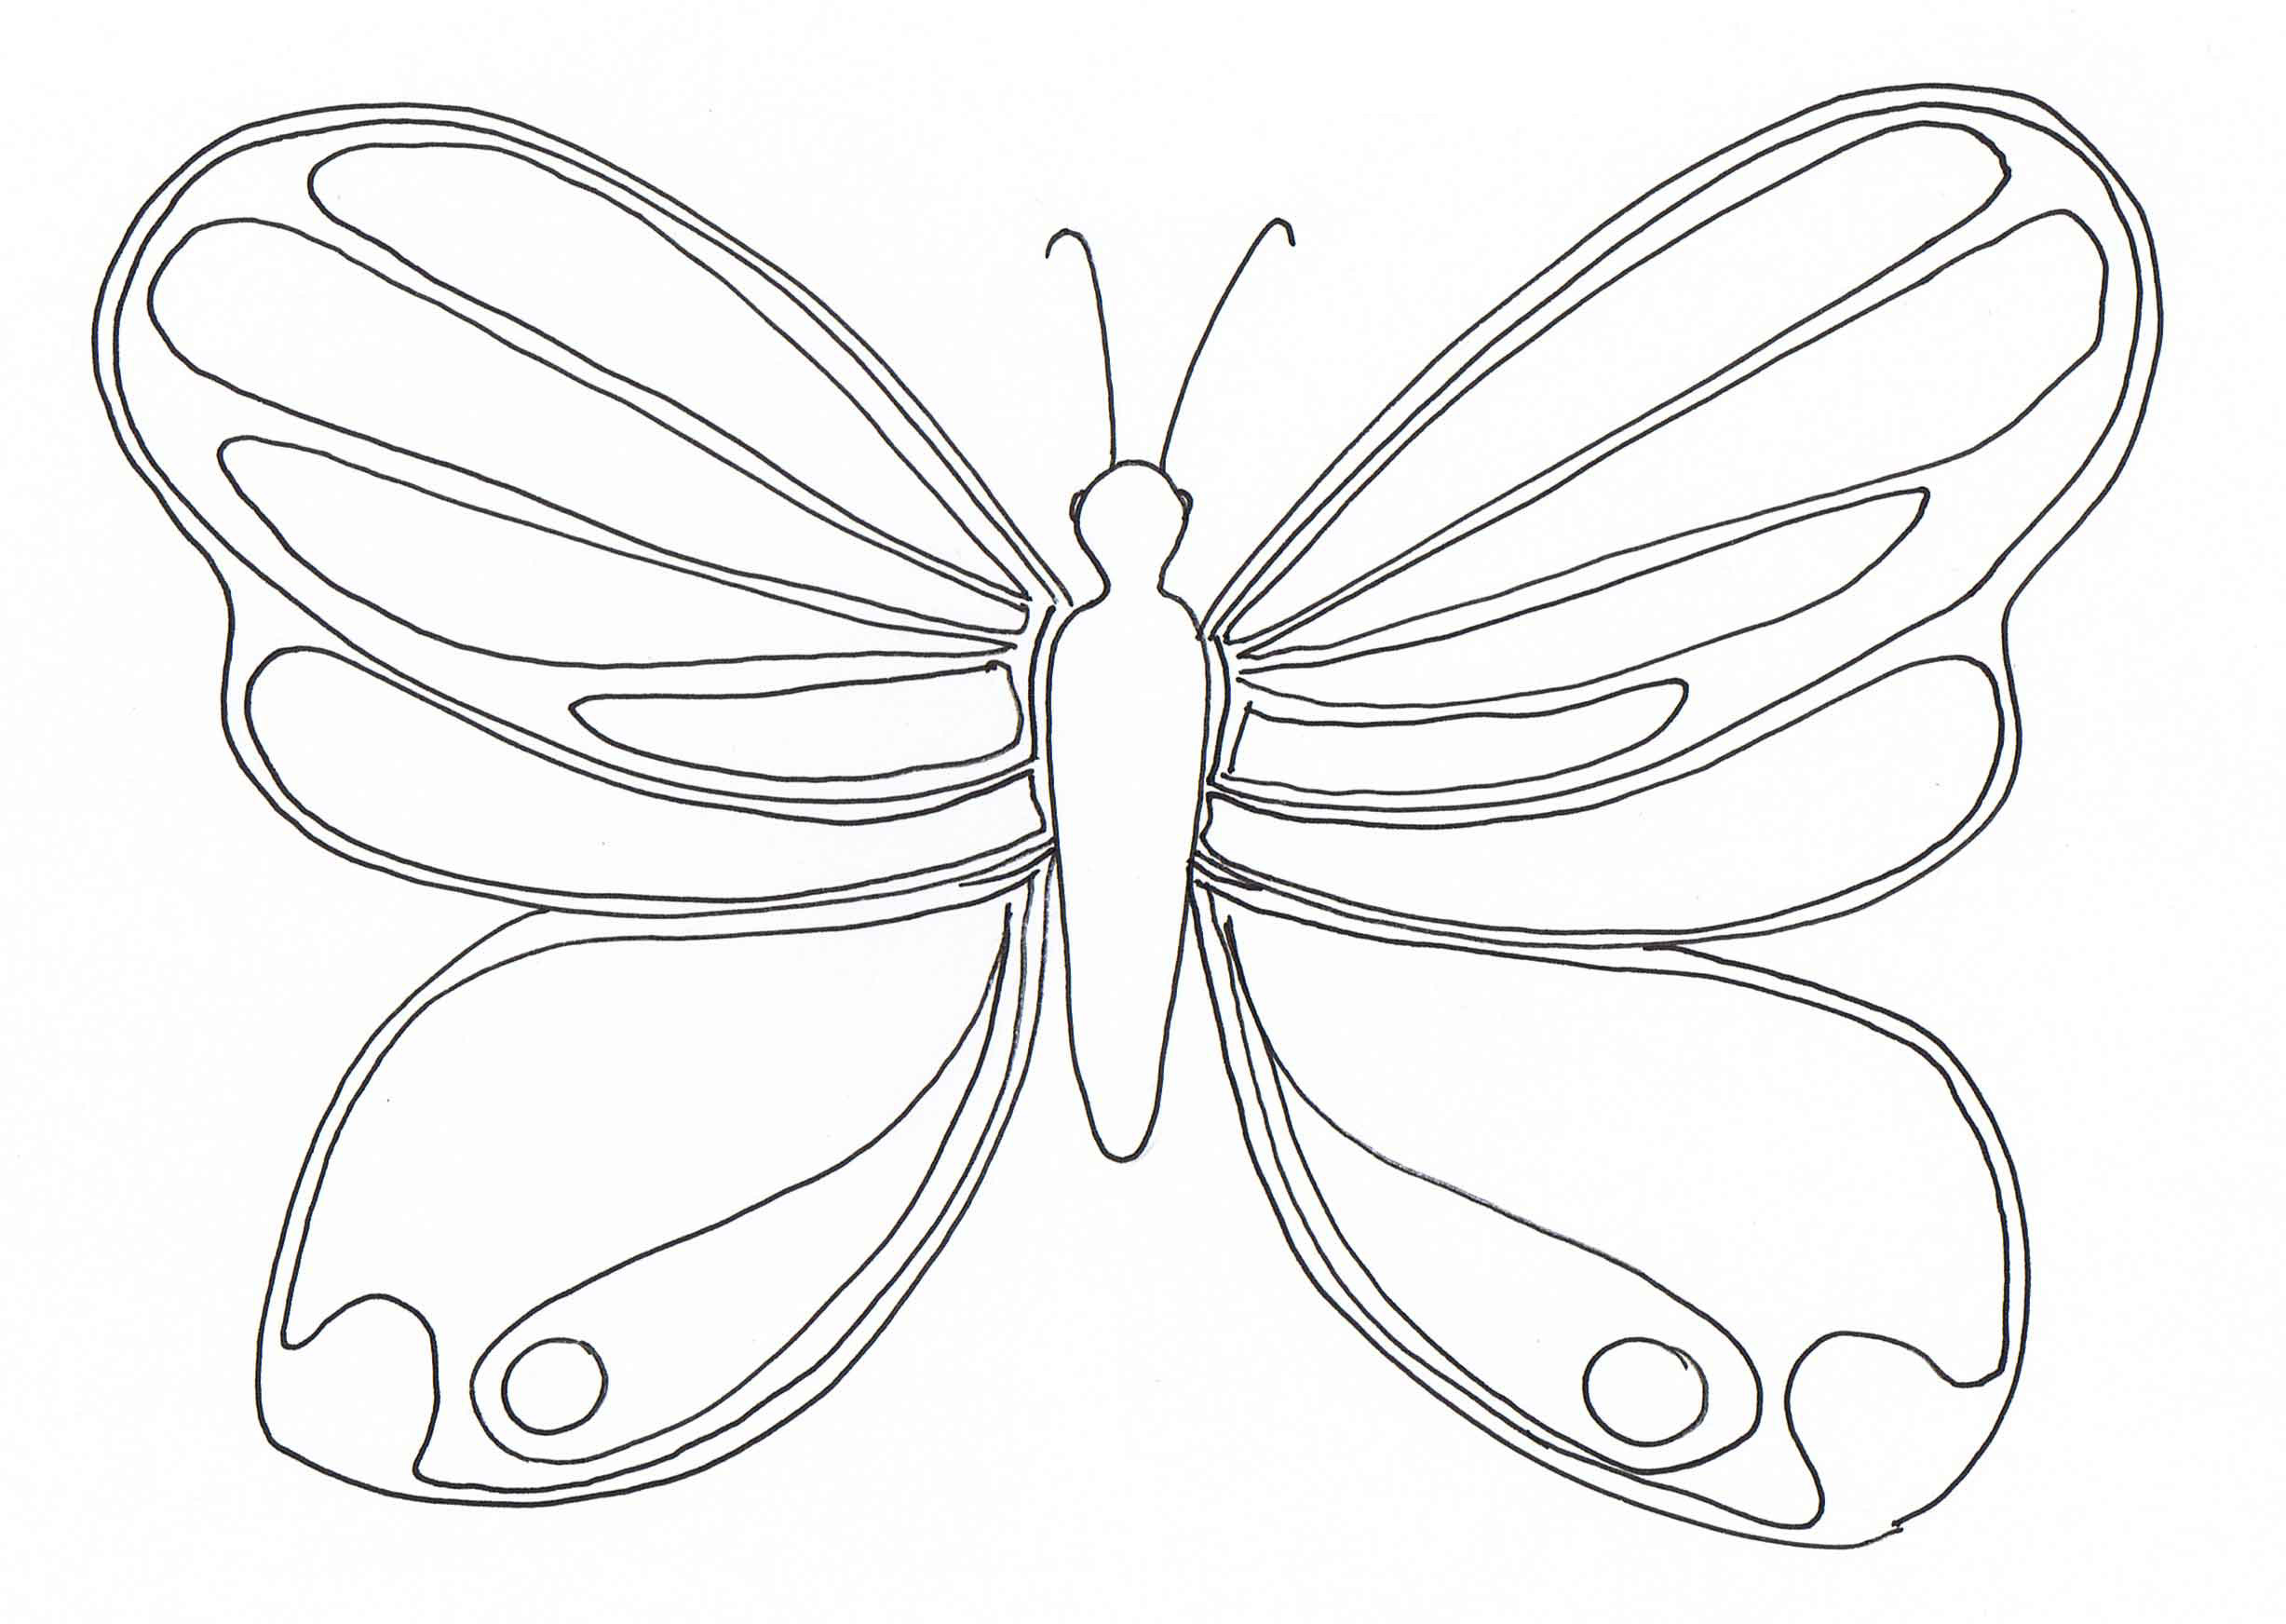 Magnificent butterfly - Insects Coloring pages for kids to ...